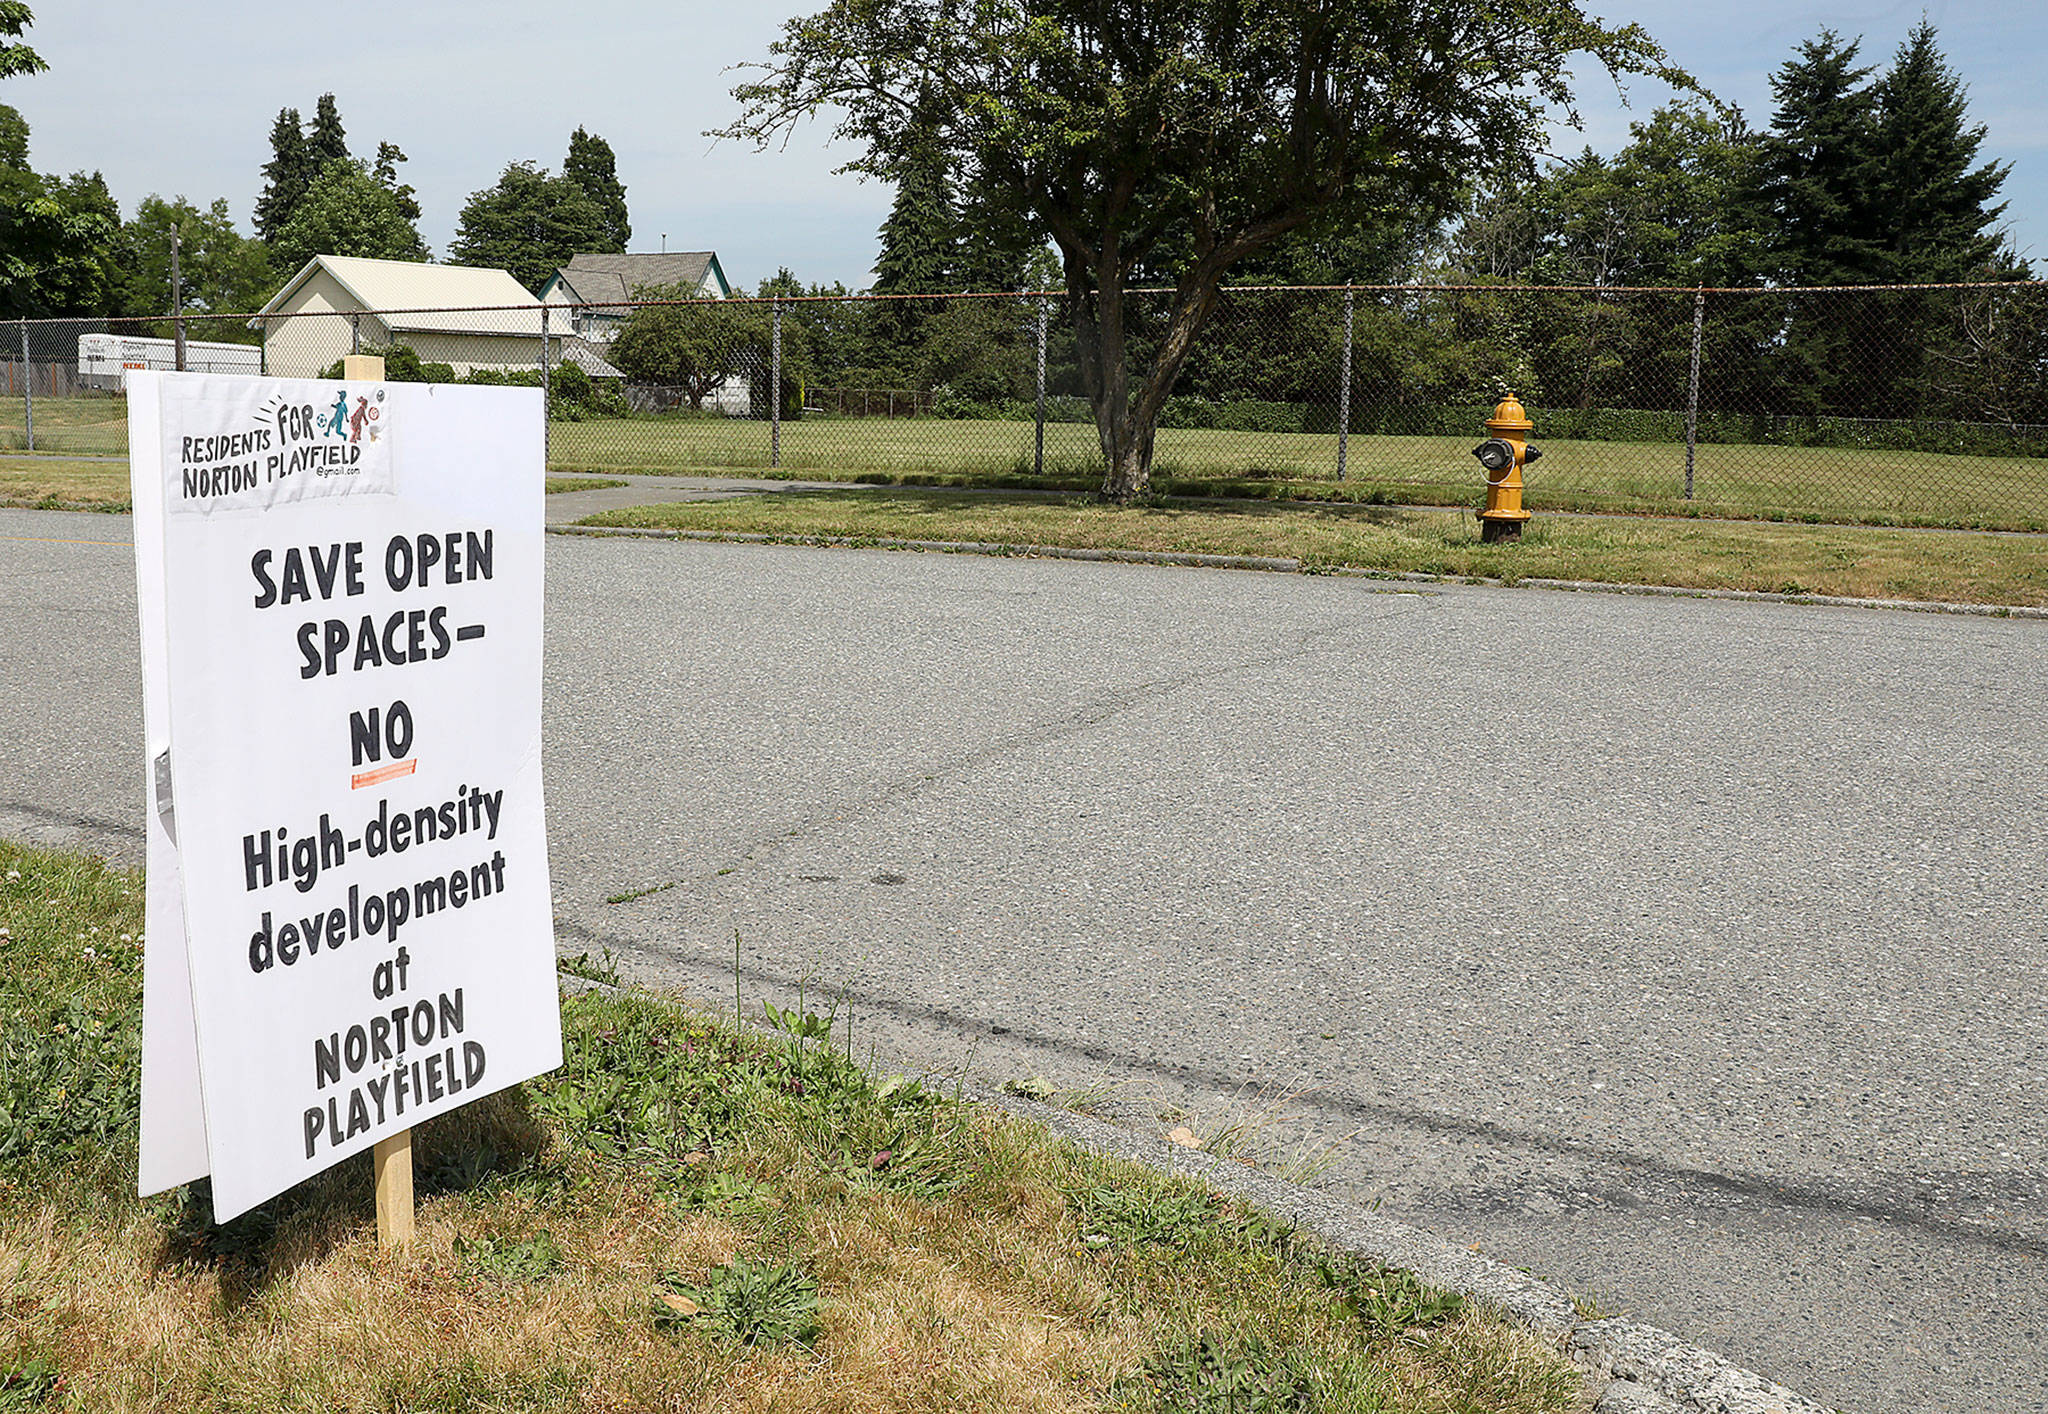 Signs have popped up in the Port Gardner neighborhood against a proposal by the Everett School District and Housing Hope to build affordable housing on a playfield on Norton Avenue. (Lizz Giordano / The Herald)